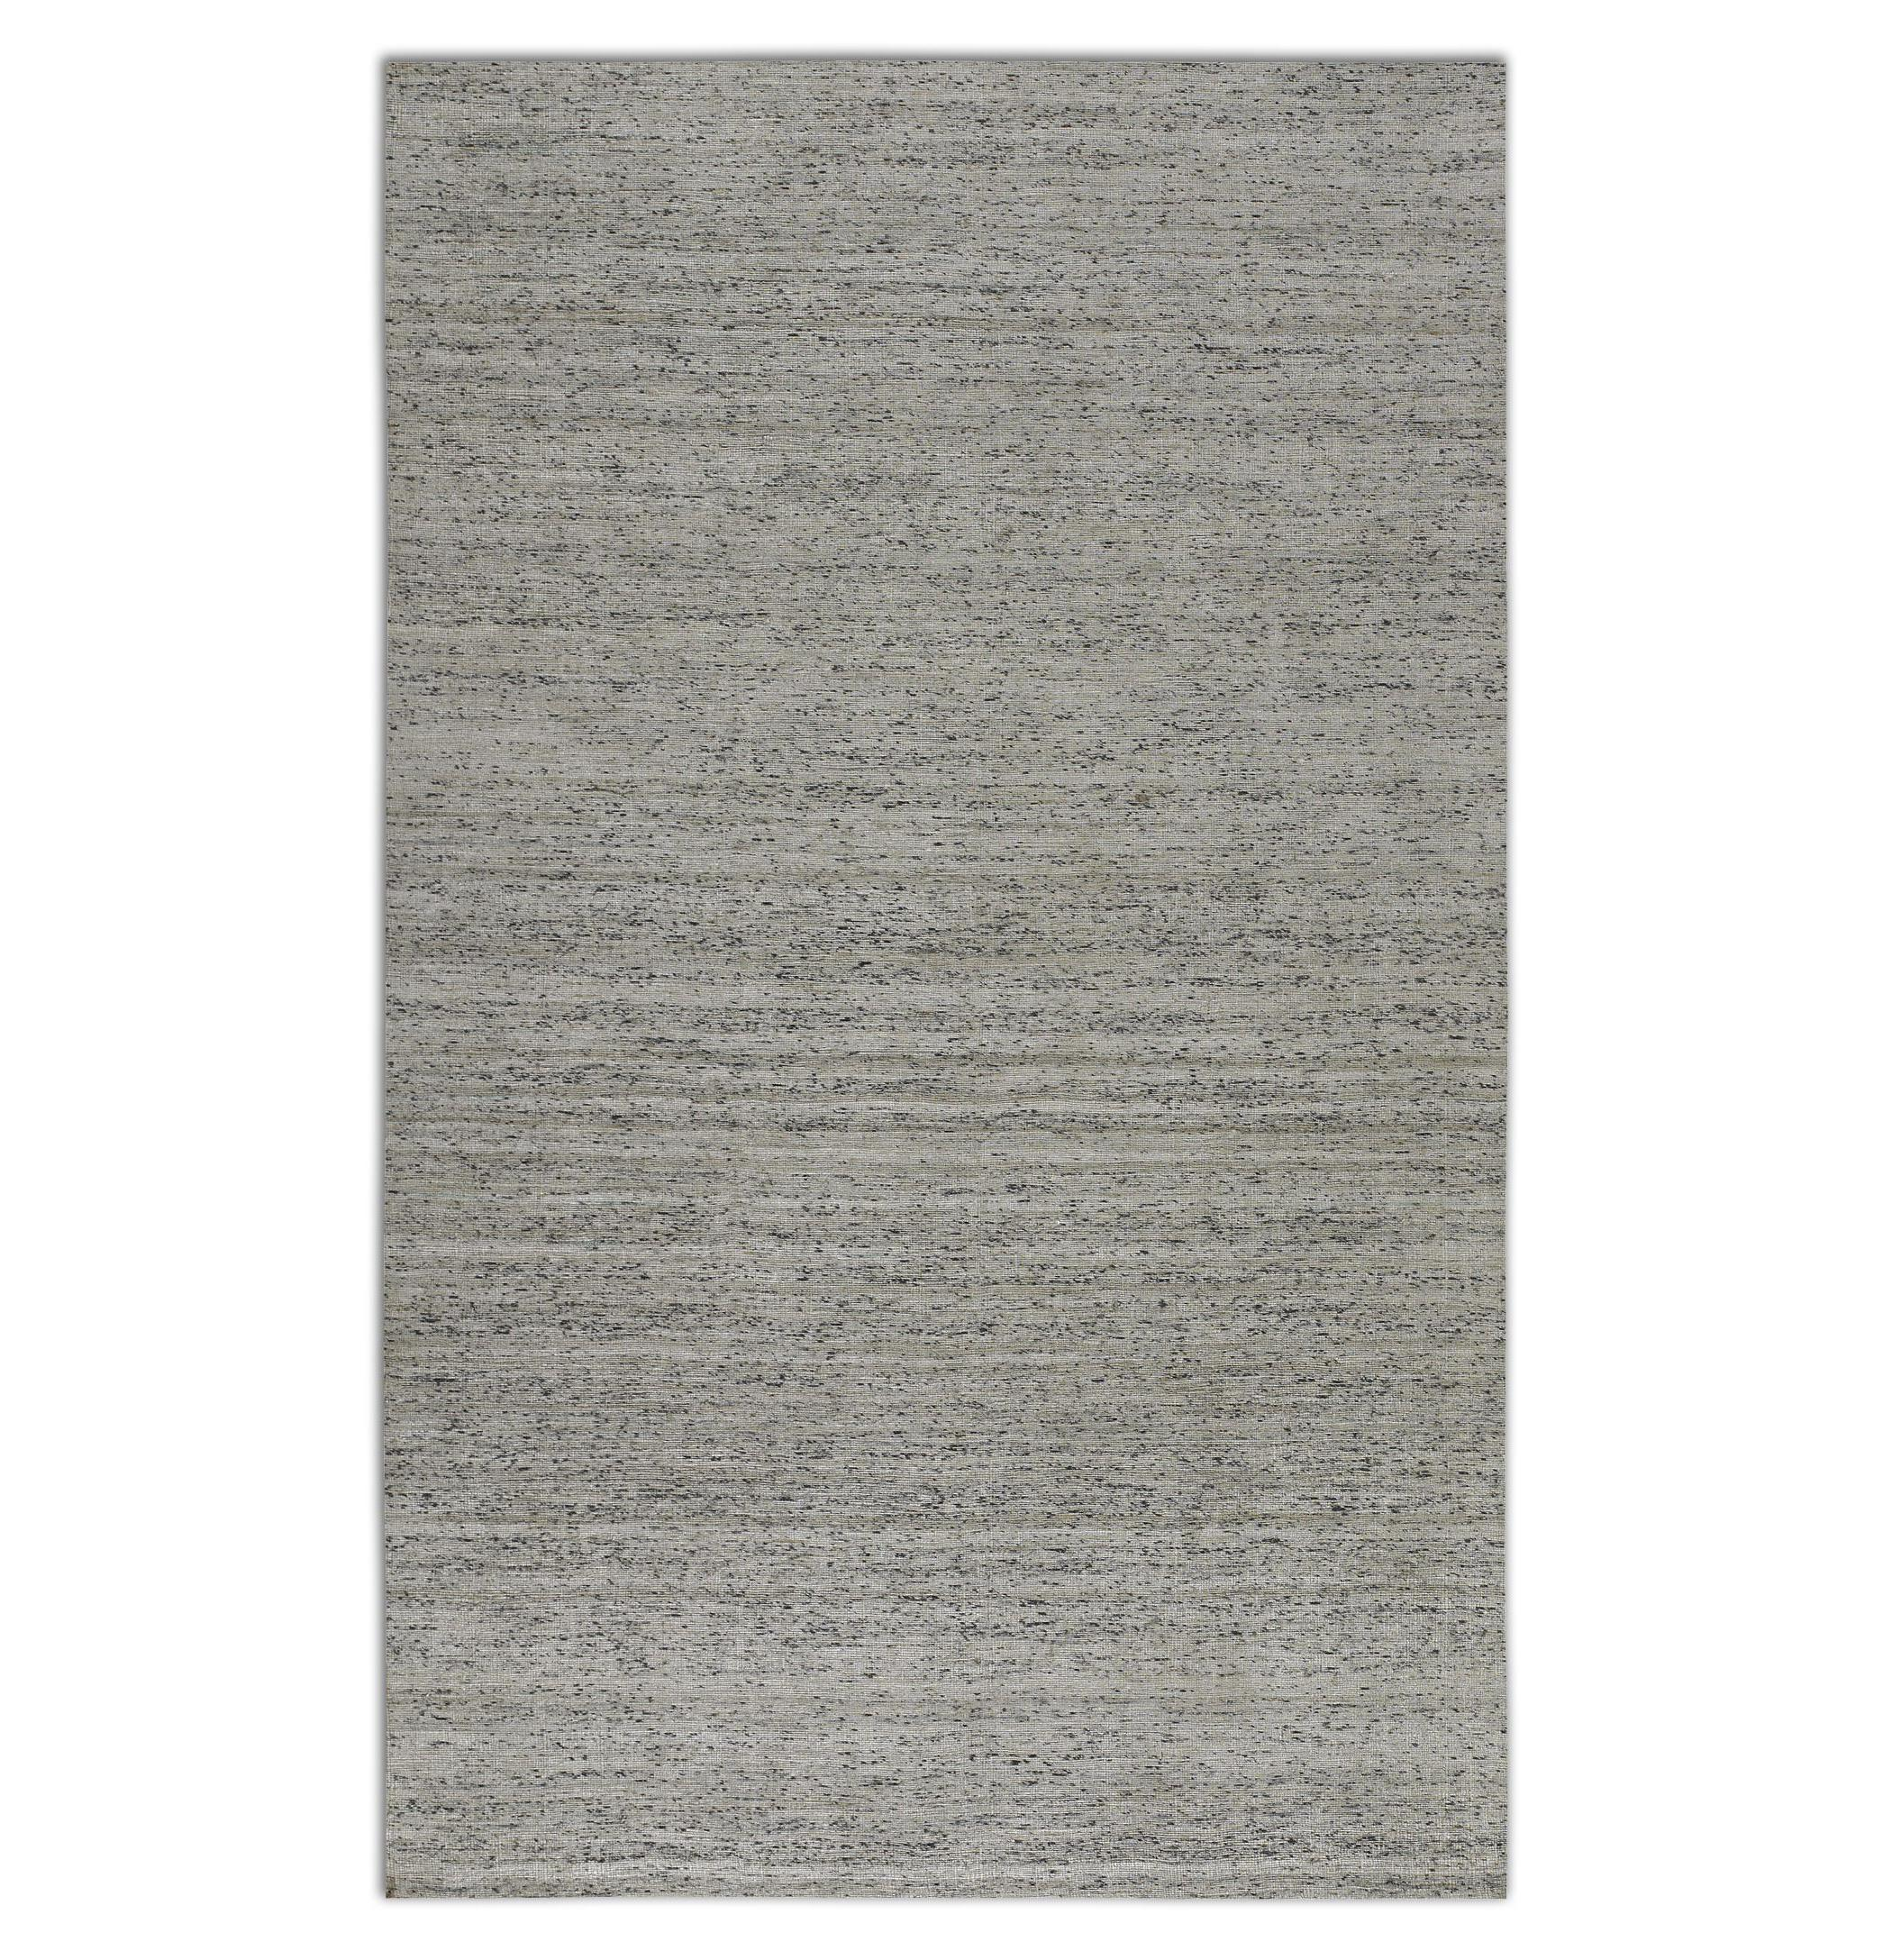 Uttermost Rugs Dacian 8 X 10 Rug - White - Item Number: 73059-8